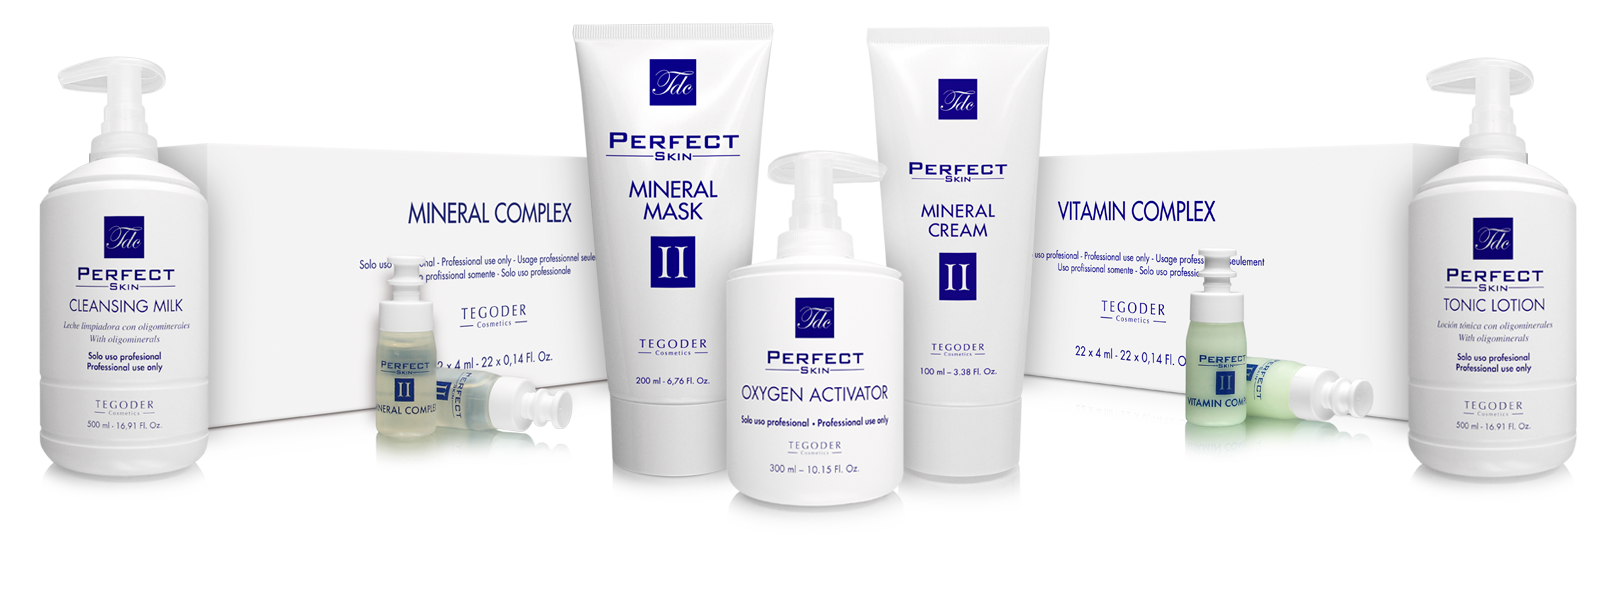 Bodegón productos profesionales Perfect Skin